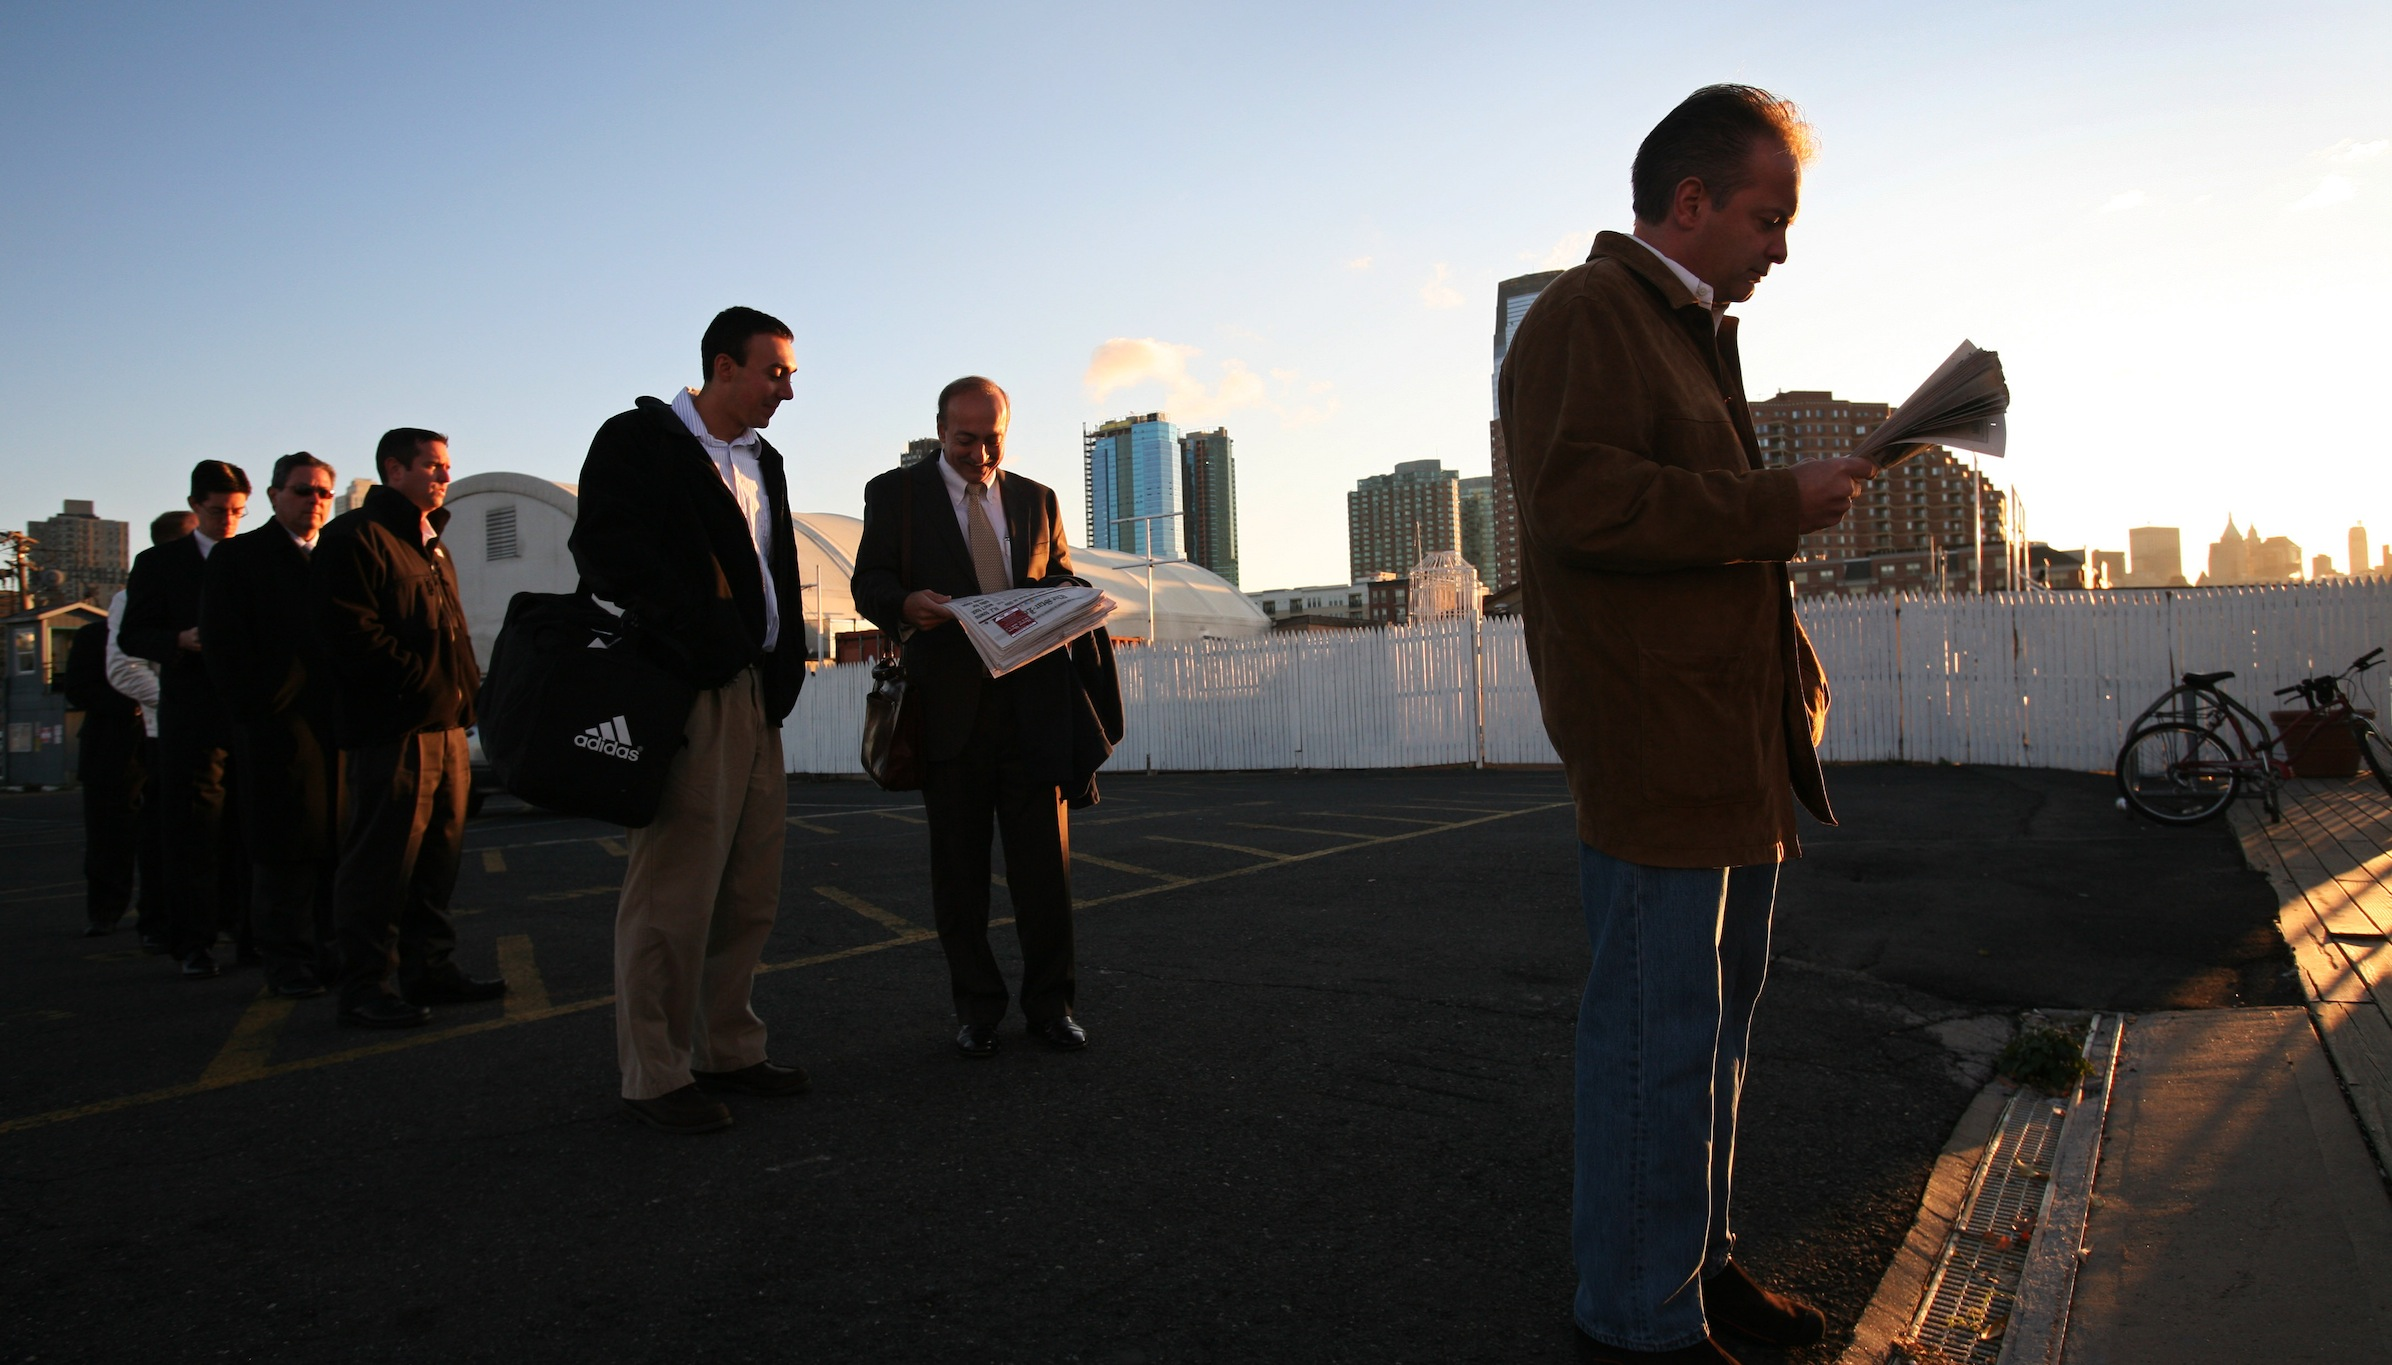 Eric Kurschus, right, a bond trader with Citation Financial Group, reads the Wall Street Journal as he waits to take a commuter ferry in Jersey City, N.J. to New York's financial district on Thursday, Oct. 23, 2008. Traders and investment bankers might have more to worry about than dwindling bonus pools this year as mass firings on Wall Street are set to hit a record. The fallout from this year's global credit crisis has claimed jobs on all corners of Wall Street, from hedge fund managers to floor traders and beyond. More than 110,000 have lost their jobs so far this year, and some industry experts forecast it could come close to 200,000 before the year is over. (AP Photo/Mark Lennihan)